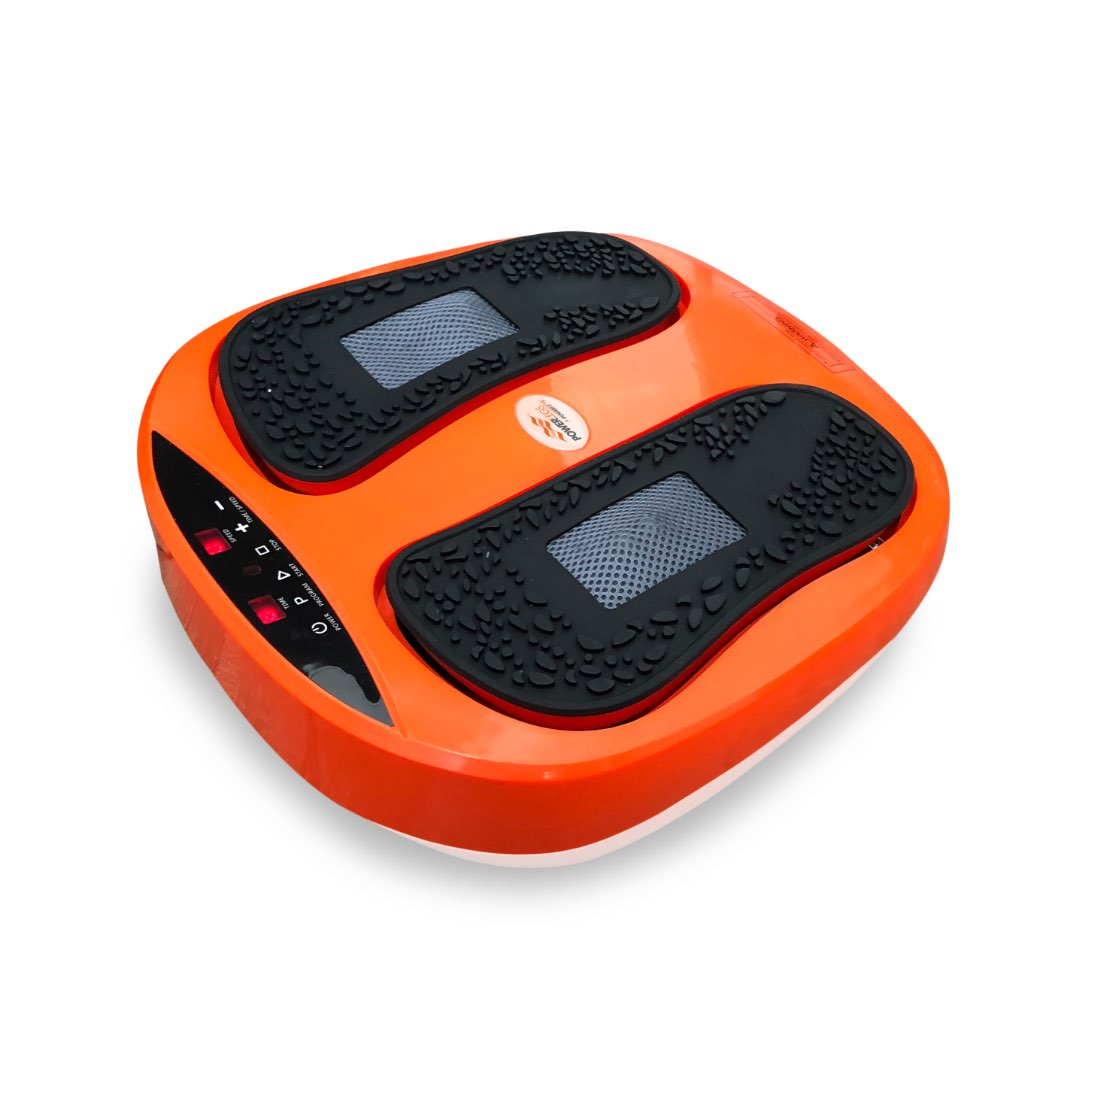 An image of Vibro Legs Foot and Leg Massager